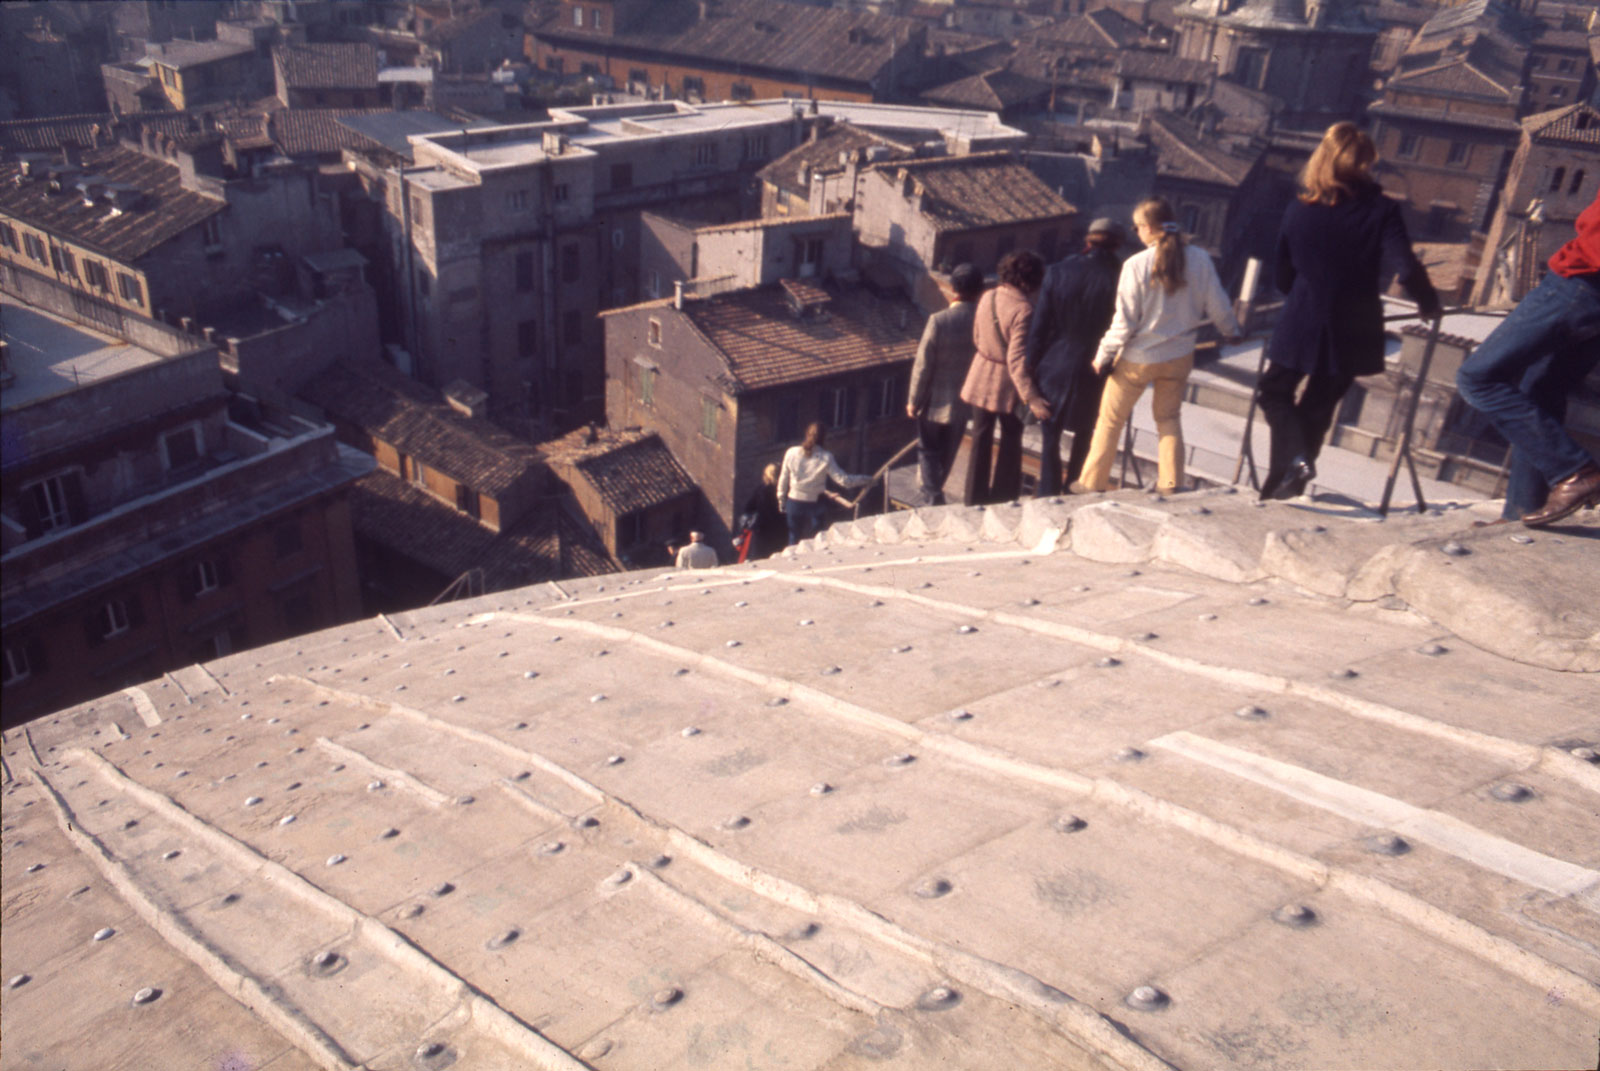 A group from the American Academy in Rome descending the Pantheon's roof, circa 1975